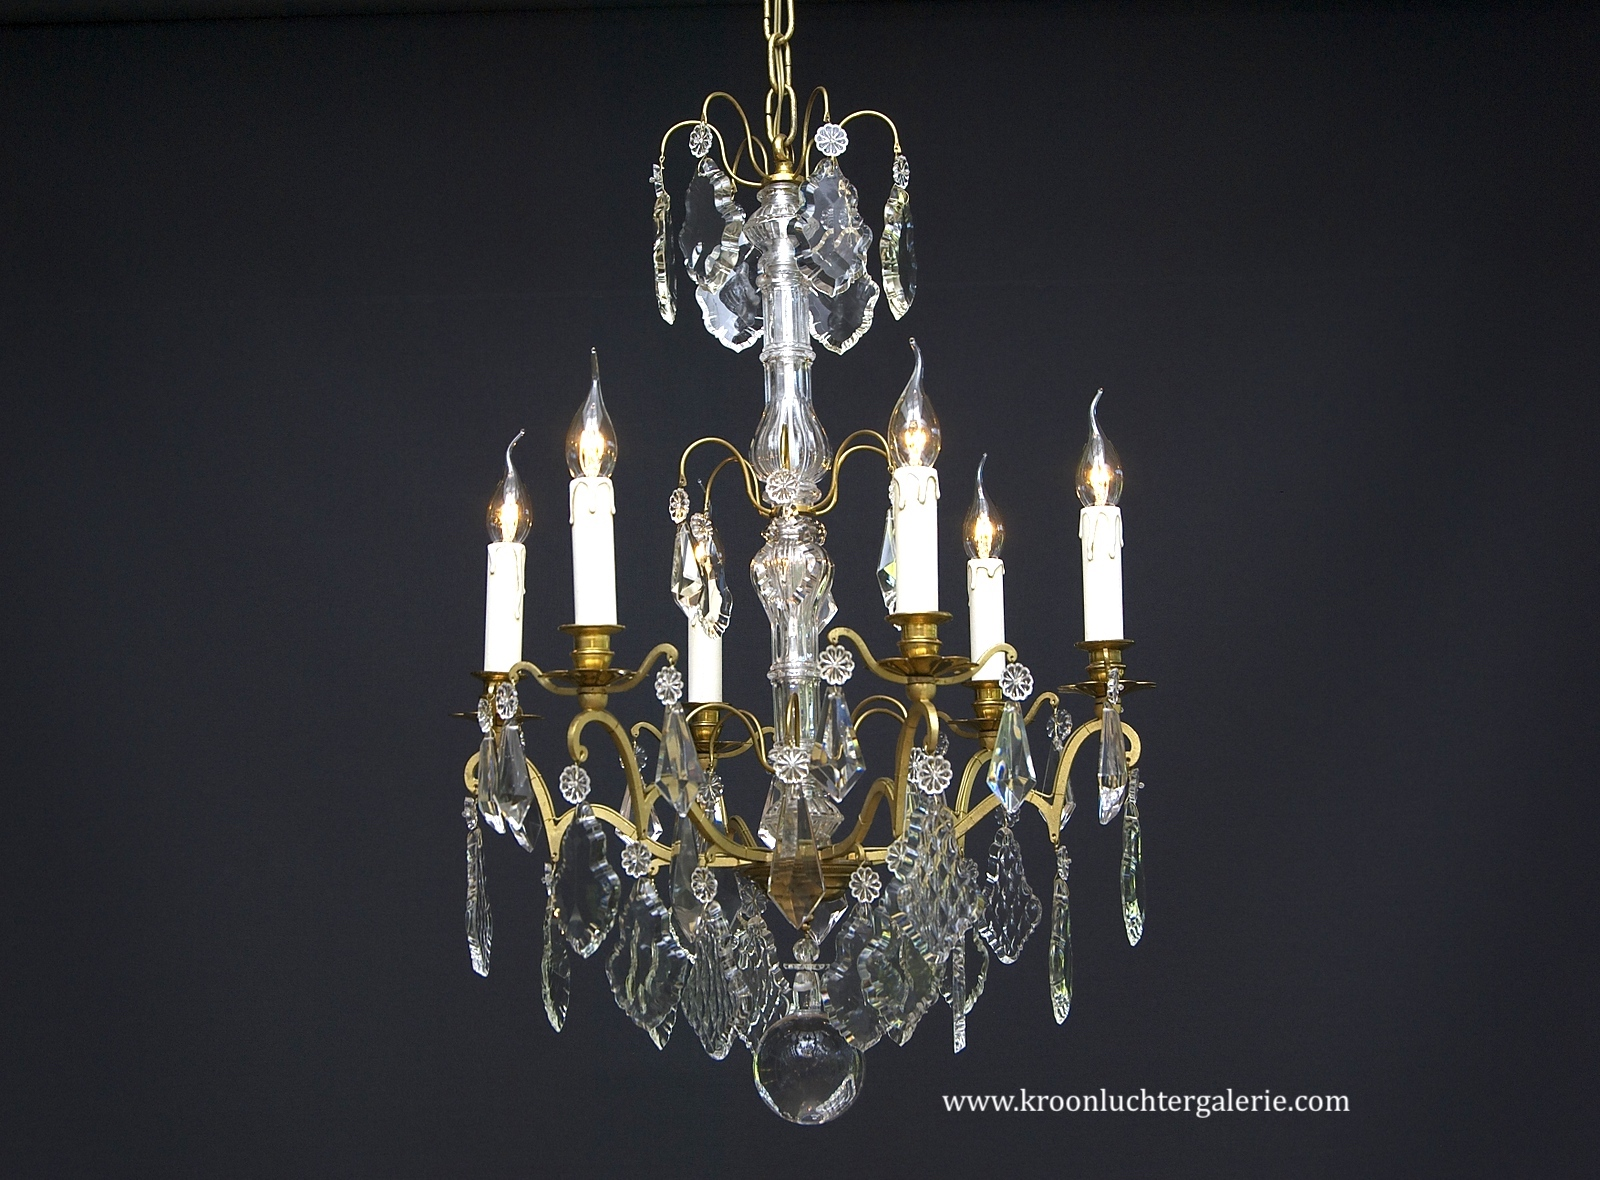 A 20th century French chandelier with 6 light